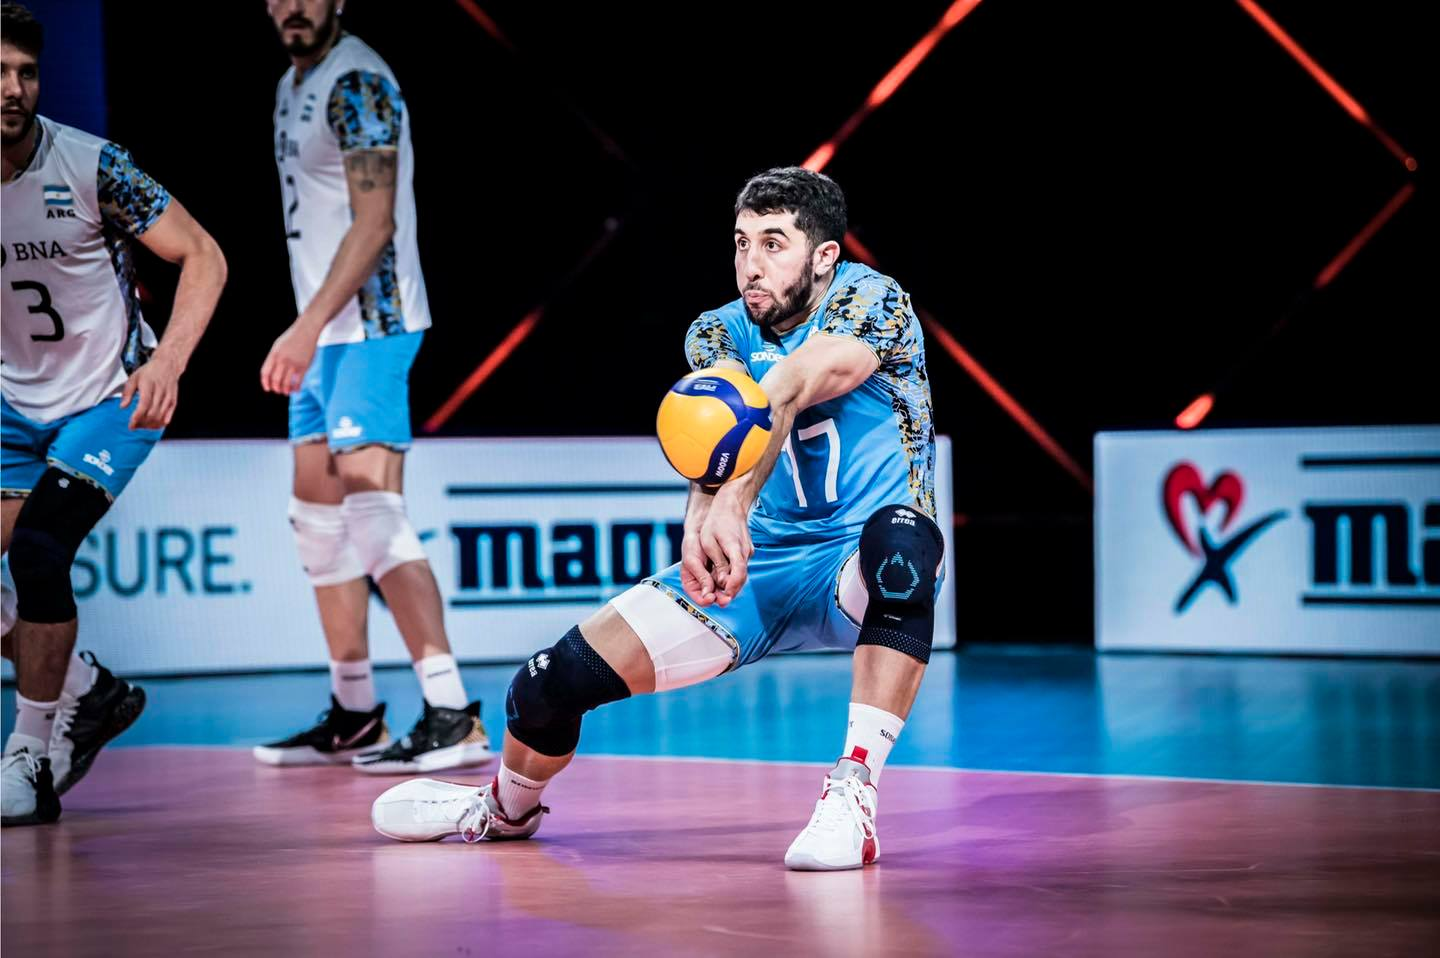 Nations Volleyball League: Argentina will face the United States